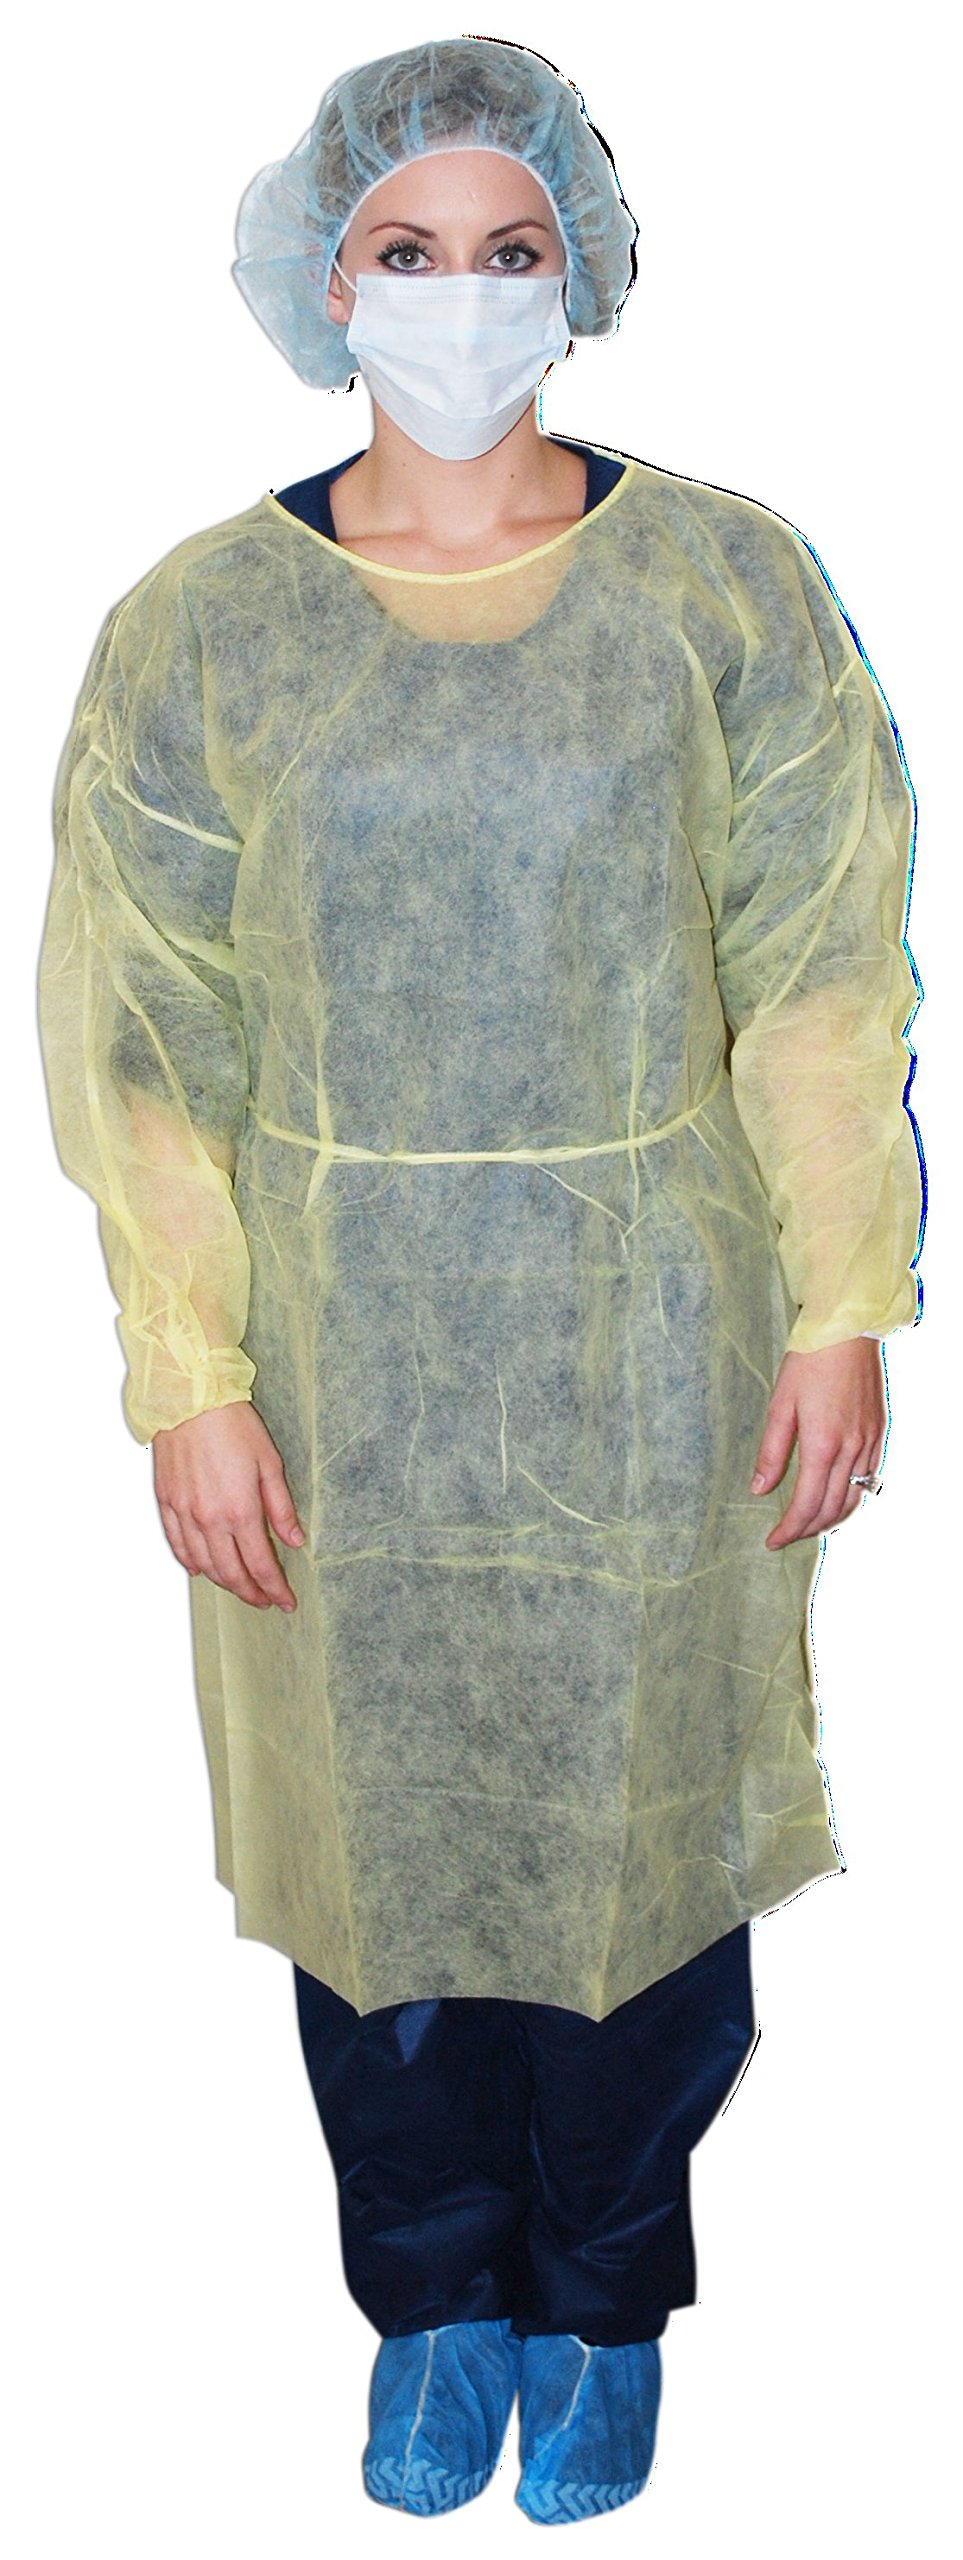 DUKAL 301 Isolation Gown, Yellow, Non-Sterile, One Size